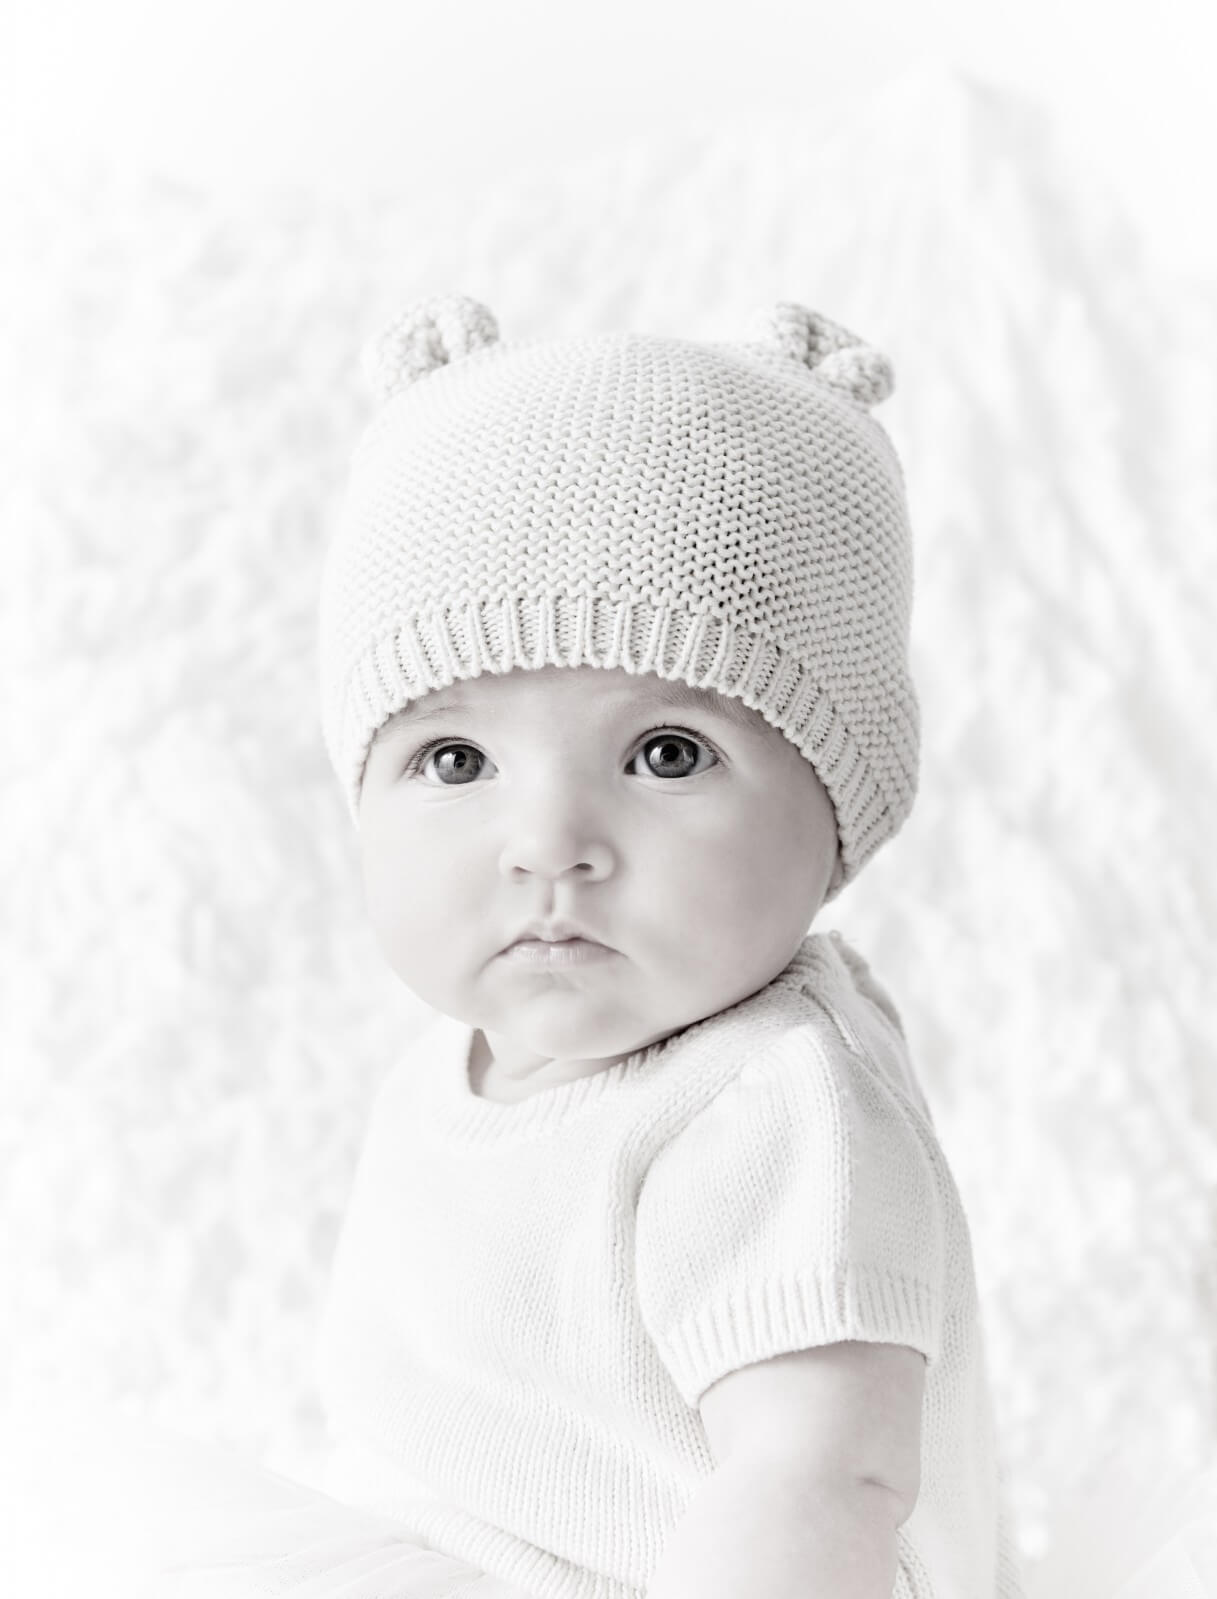 Lily wears cotton knit hat, £6.95 and dress, £29.95 both Gap.